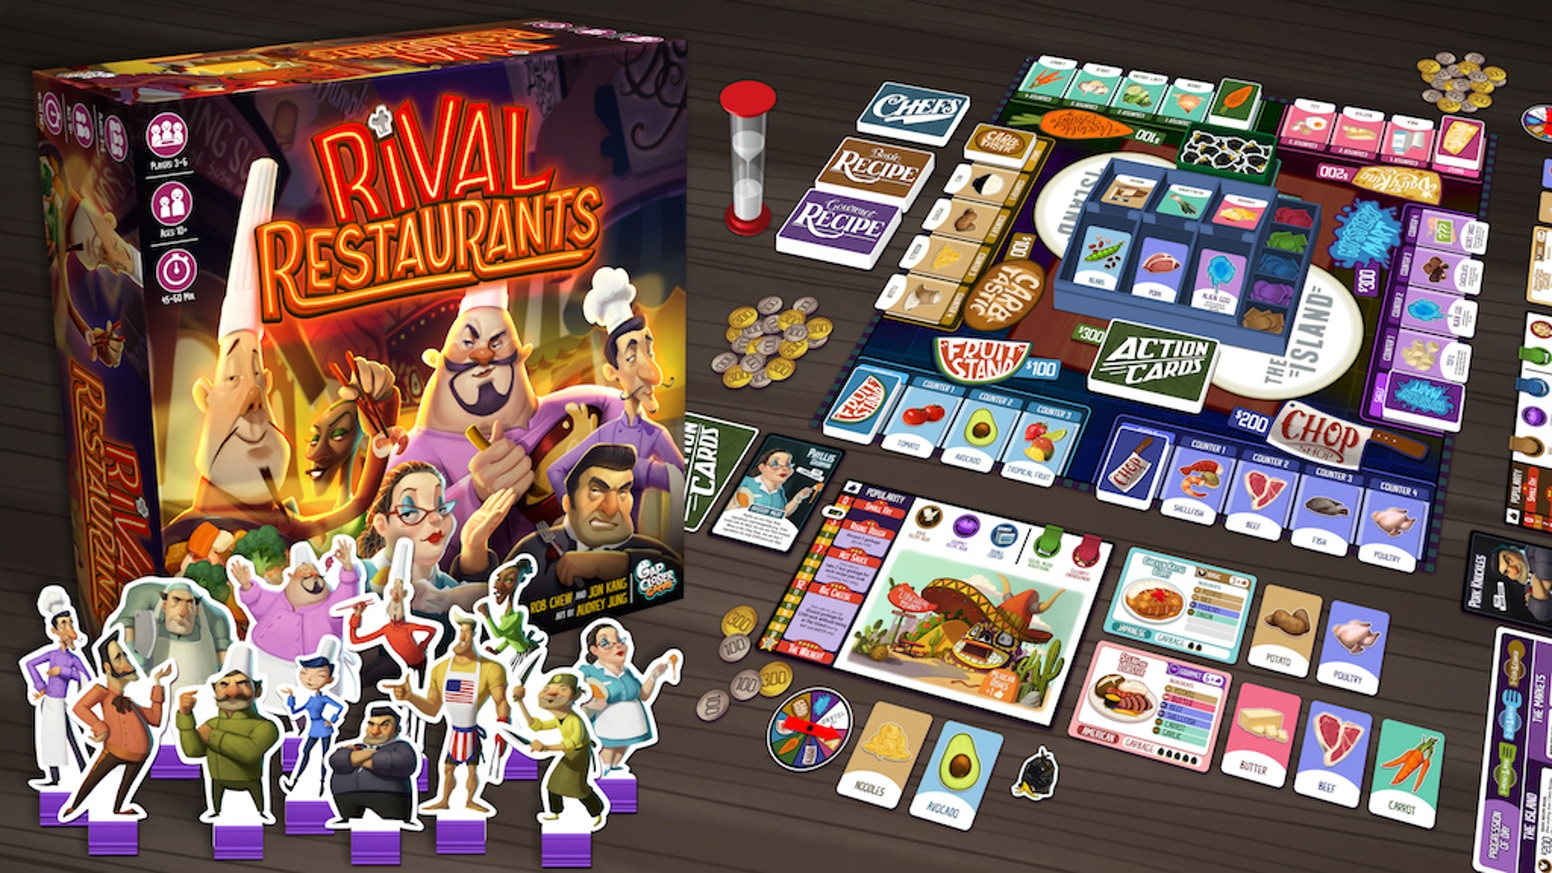 A board game about competitive restaurant owning. Use your chef's power, cook recipes, and lead your restaurant to gastronomical glory.